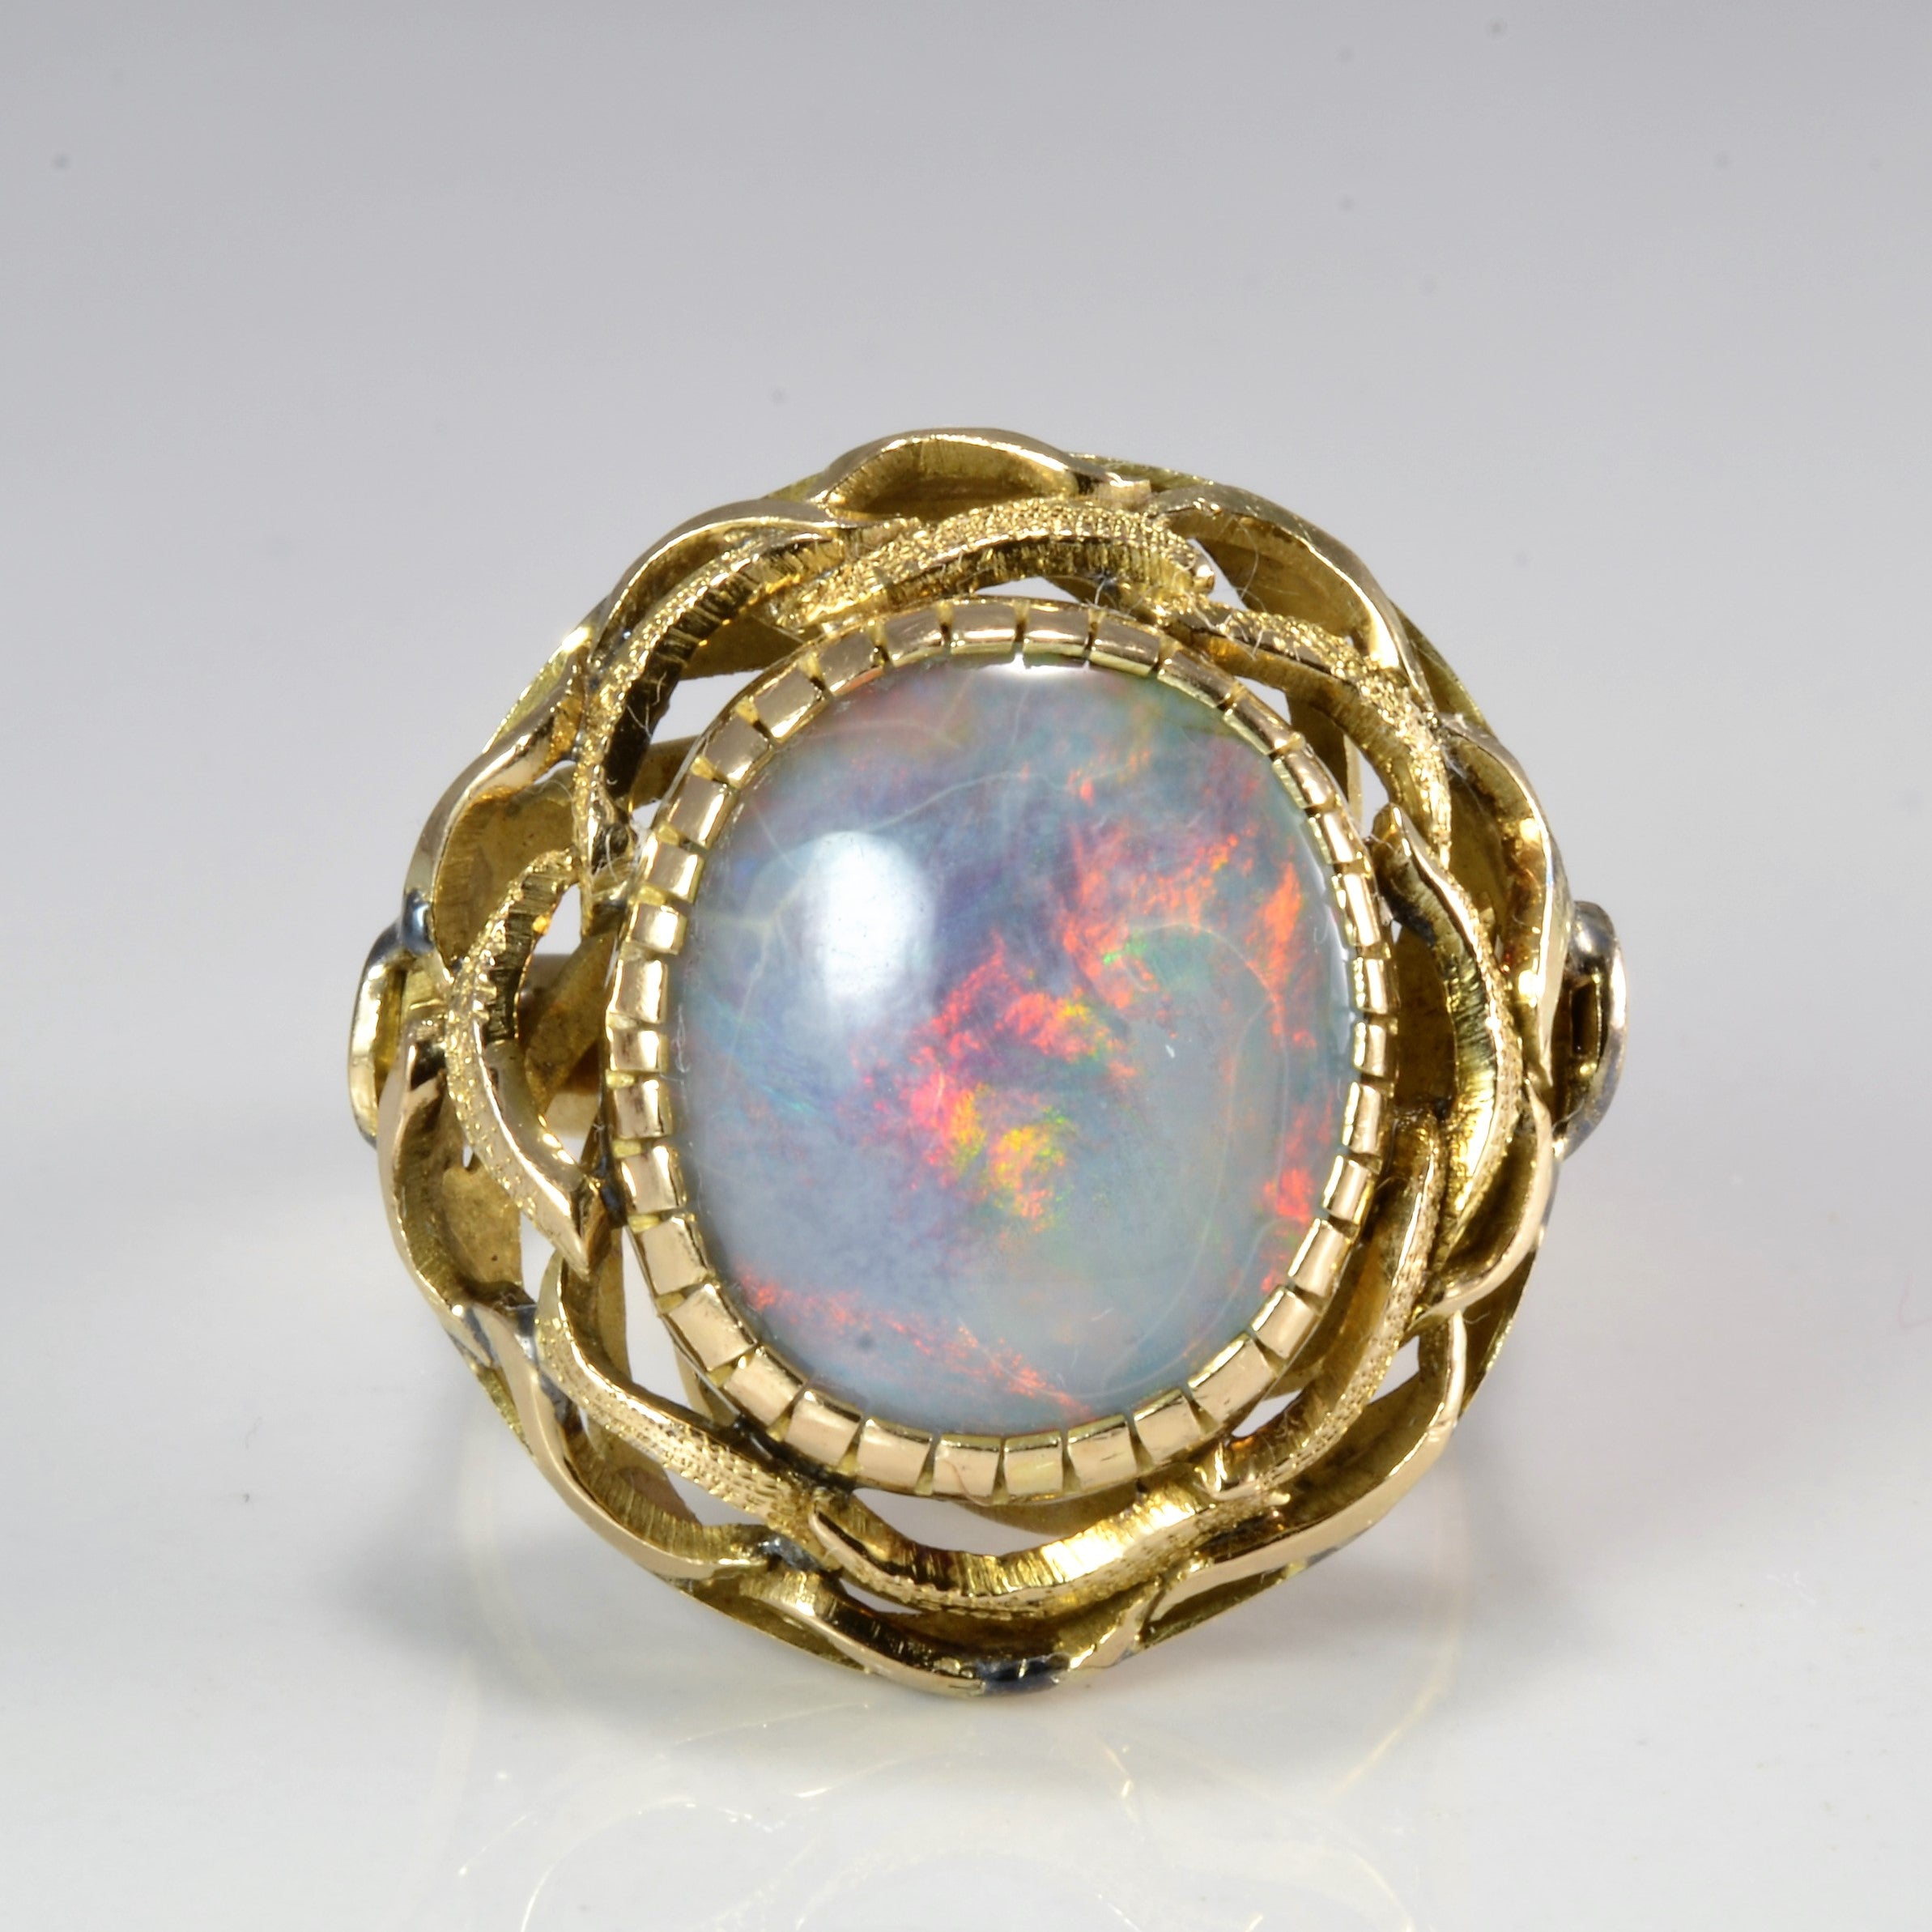 Textured Bezel Set Opal Ring | SZ 8.75 |